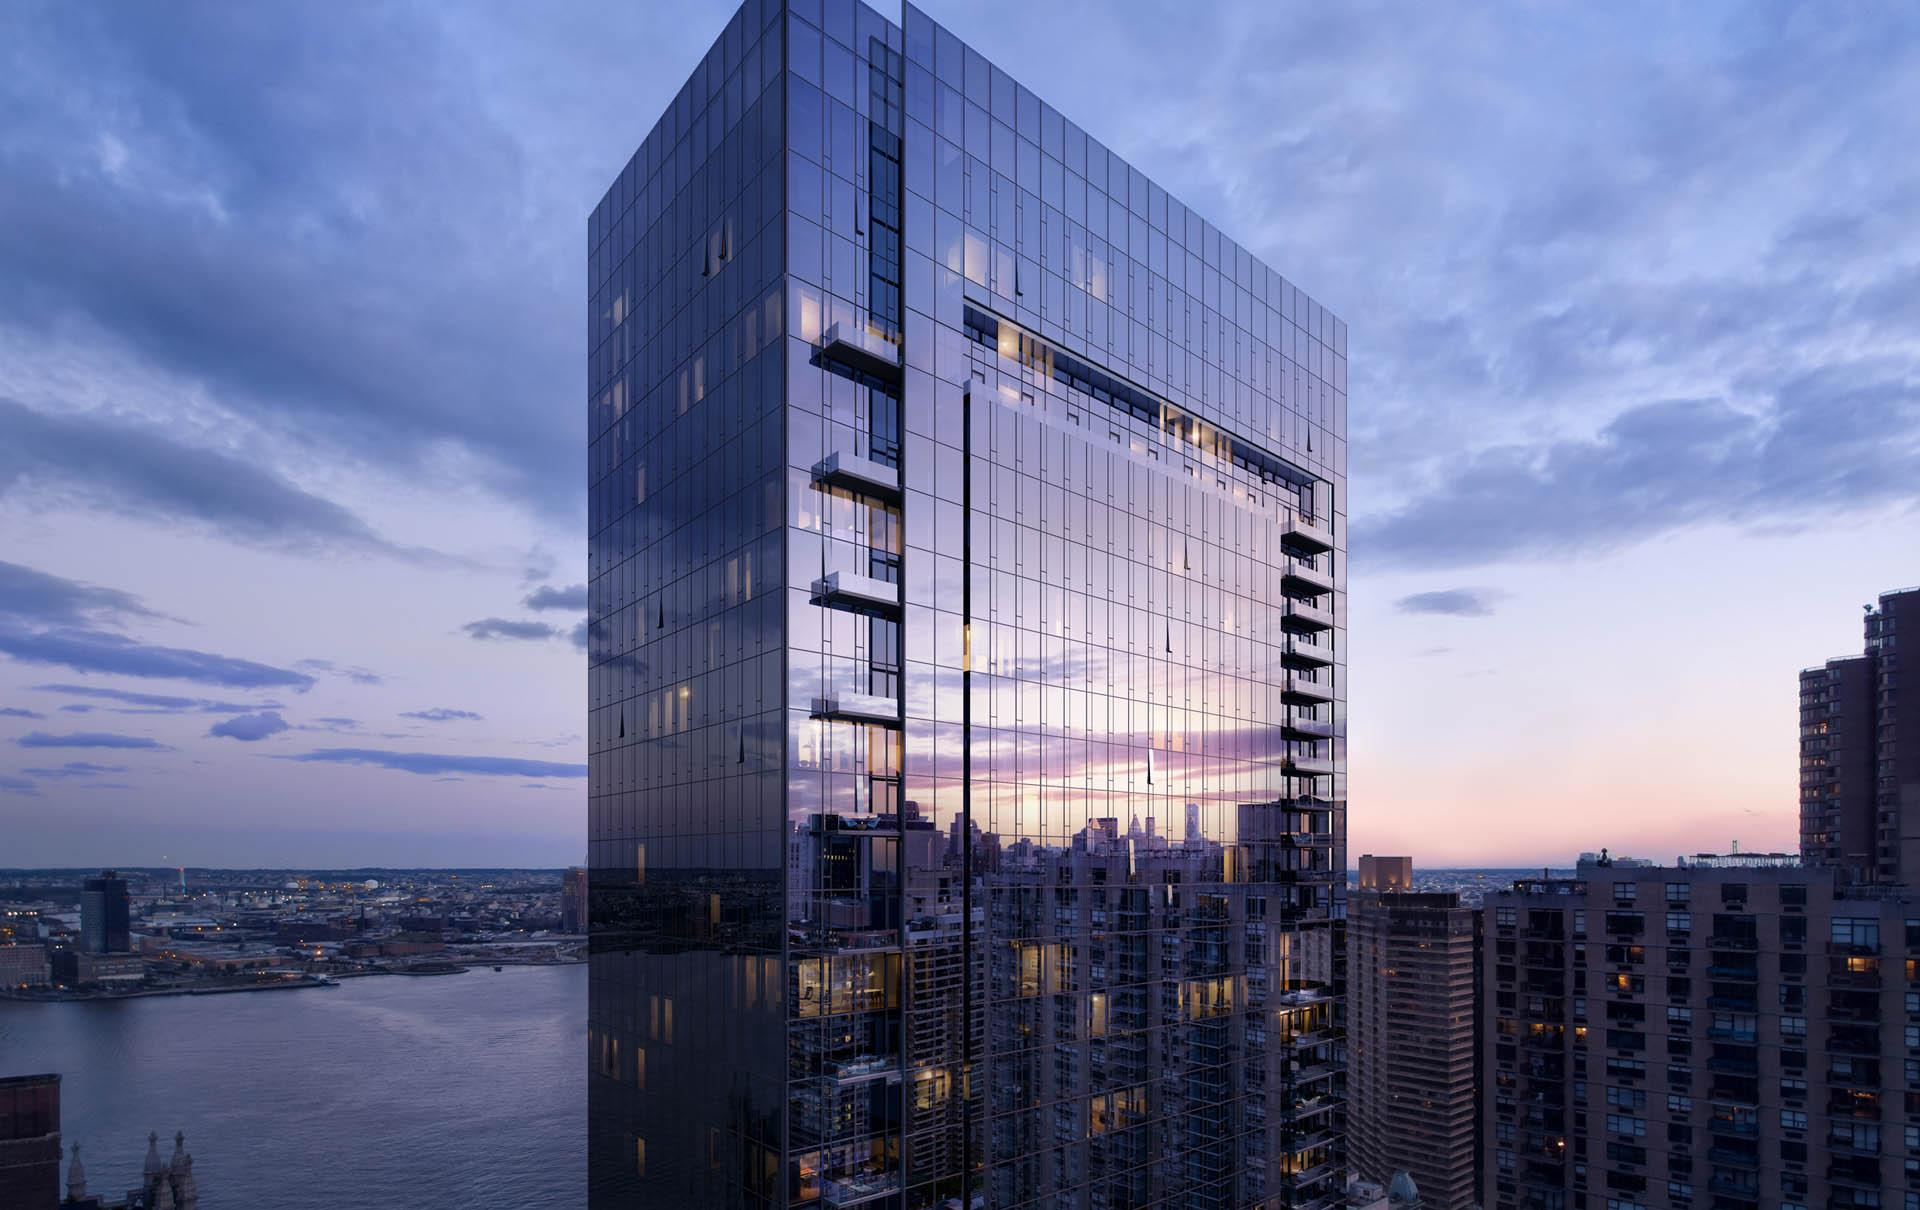 685 First Ave: Luxury Manhattan Apartments for Rent